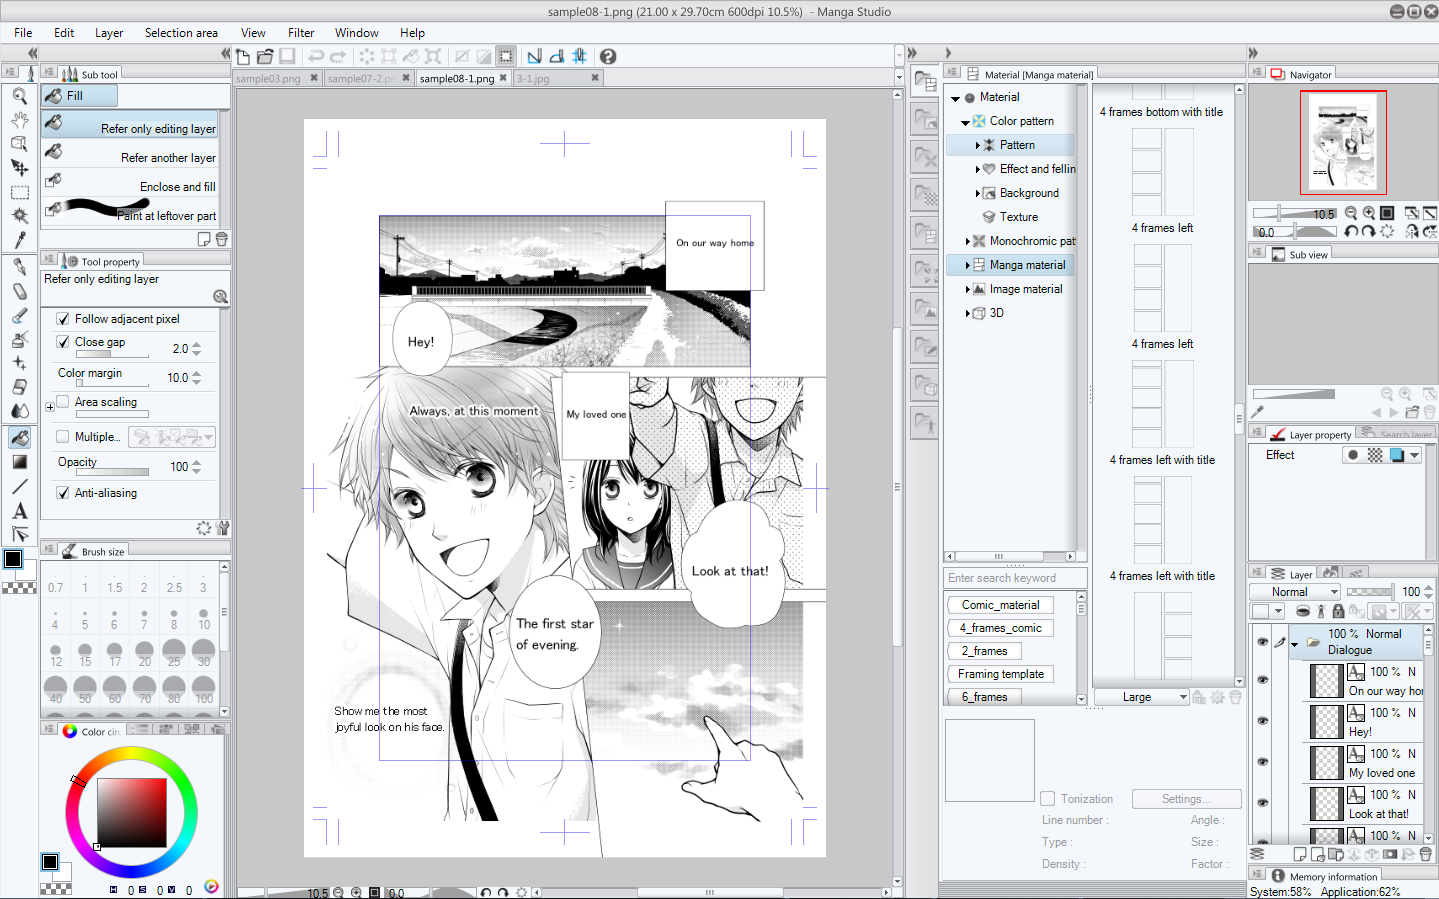 Smith Micro Clip Studio Paint EX 5 (Manga Studio)